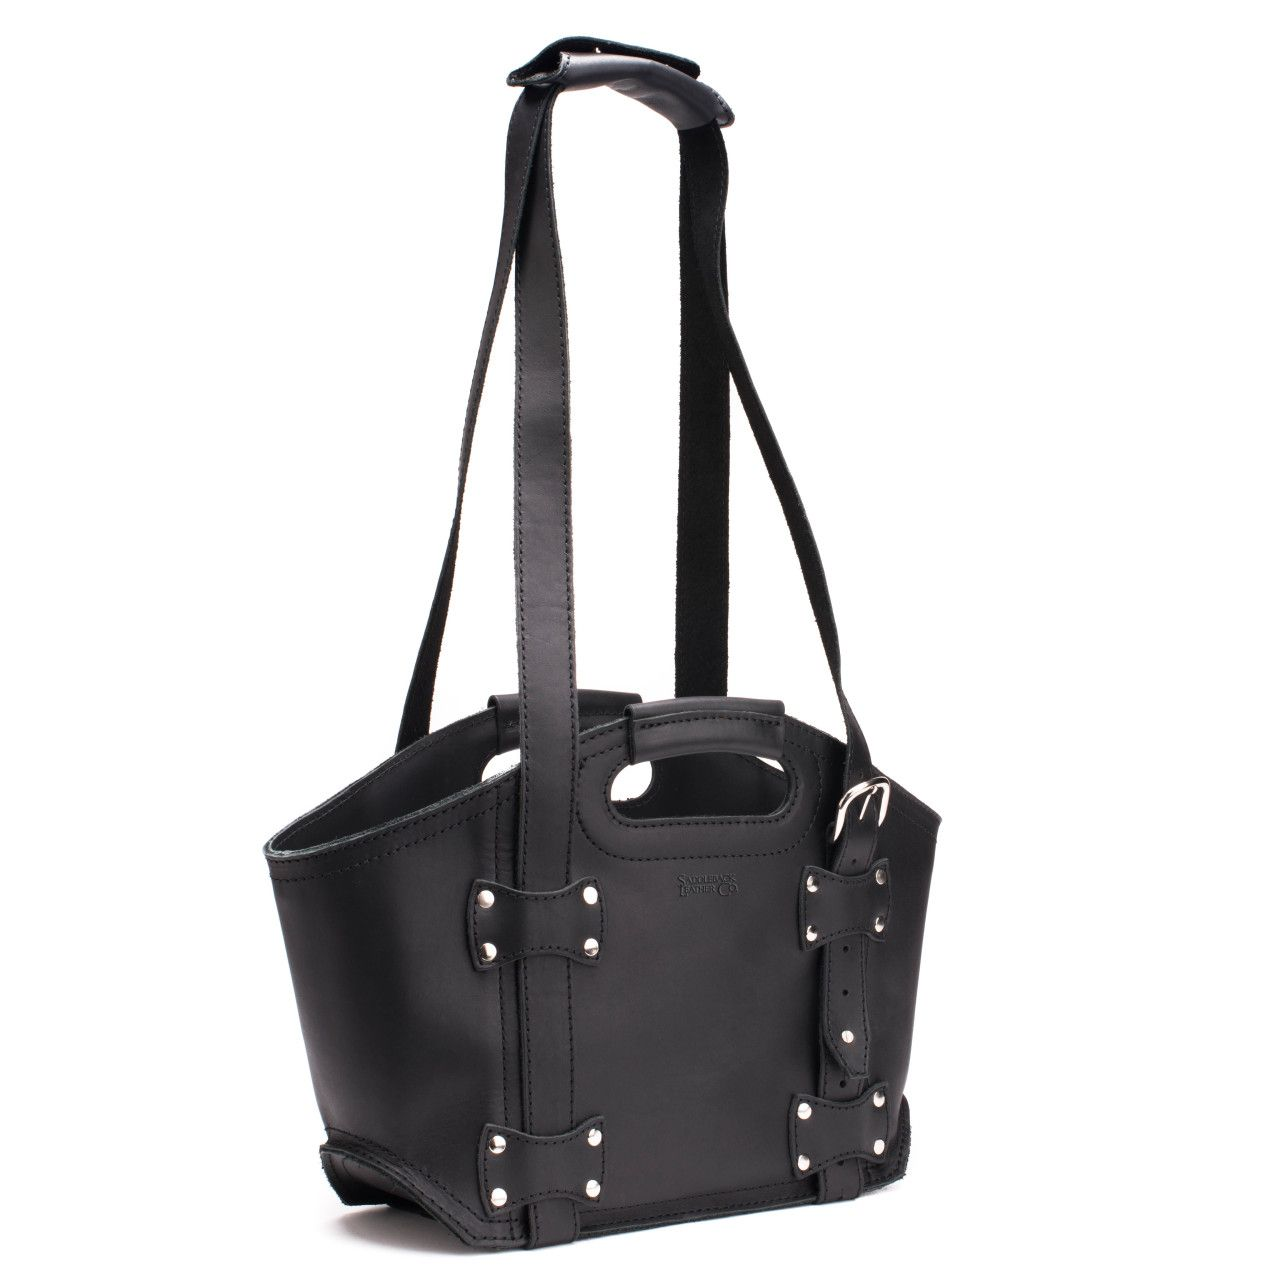 premium leather tote bag small in black leather